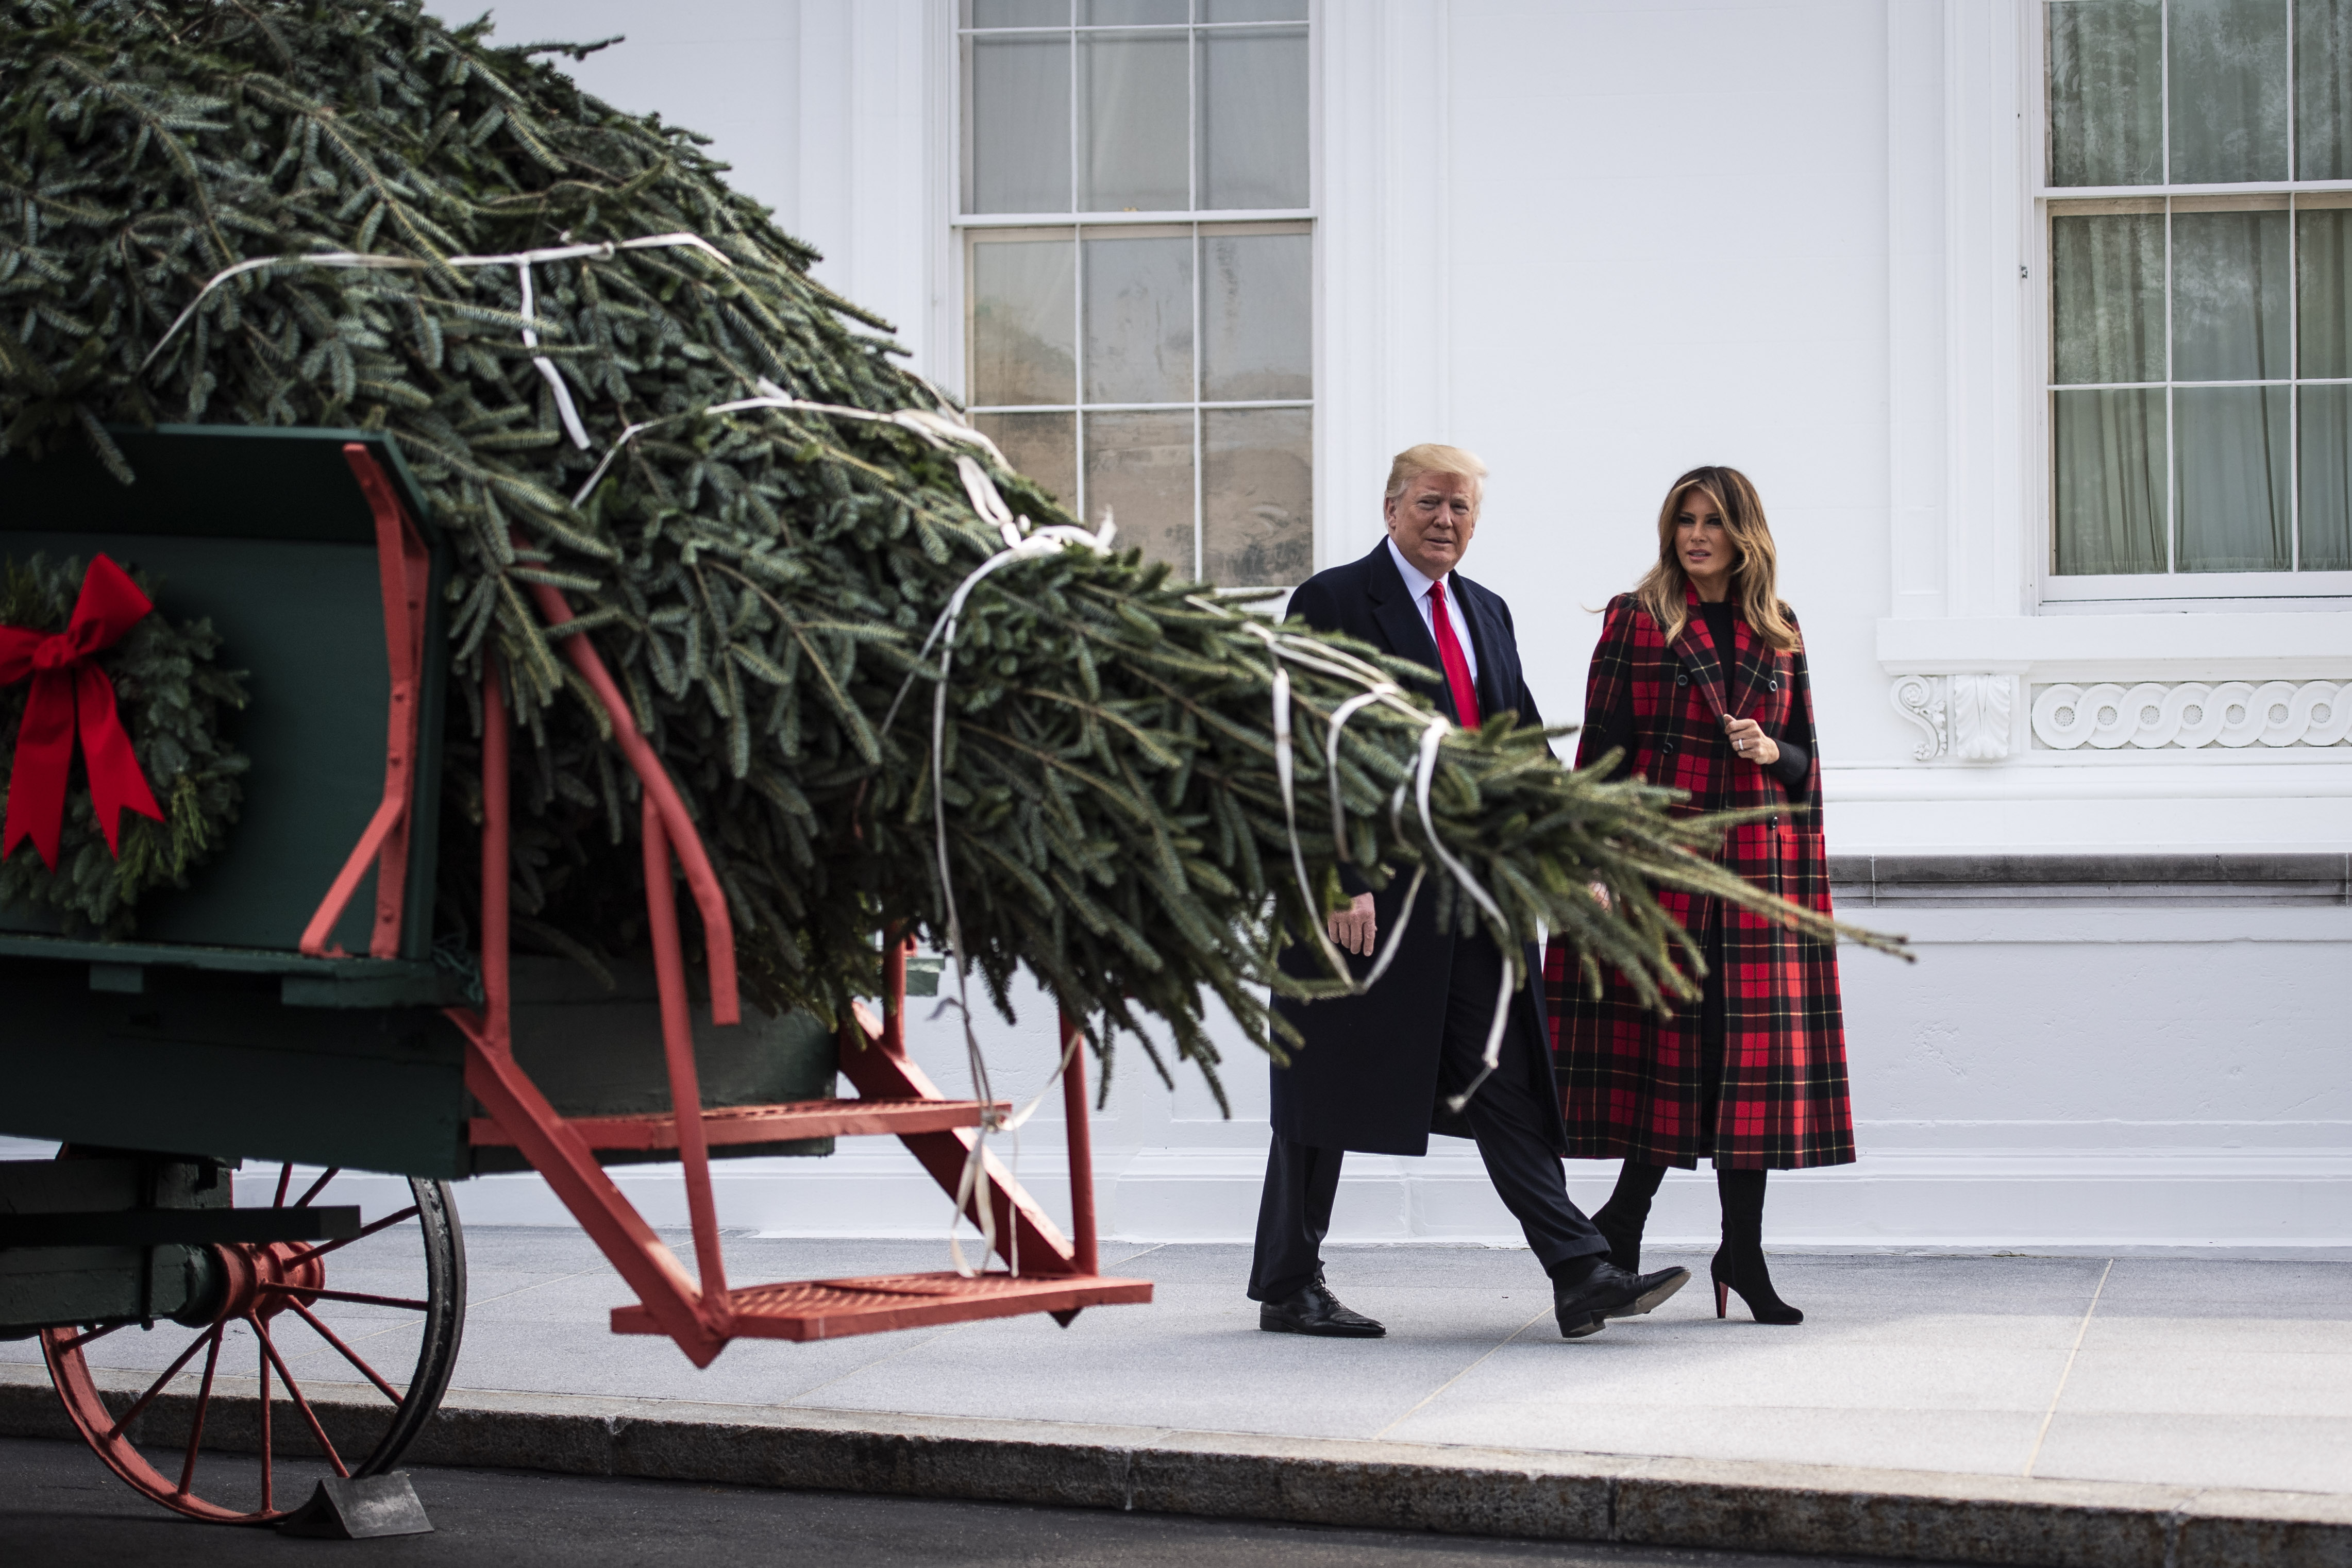 President Donald J. Trump and first lady Melania Trump view the arrival of the White House Christmas tree at the North Portico of the White House on Monday, Nov. 19, 2018 in Washington, DC. (Photo by Jabin Botsford/The Washington Post via Getty Images)